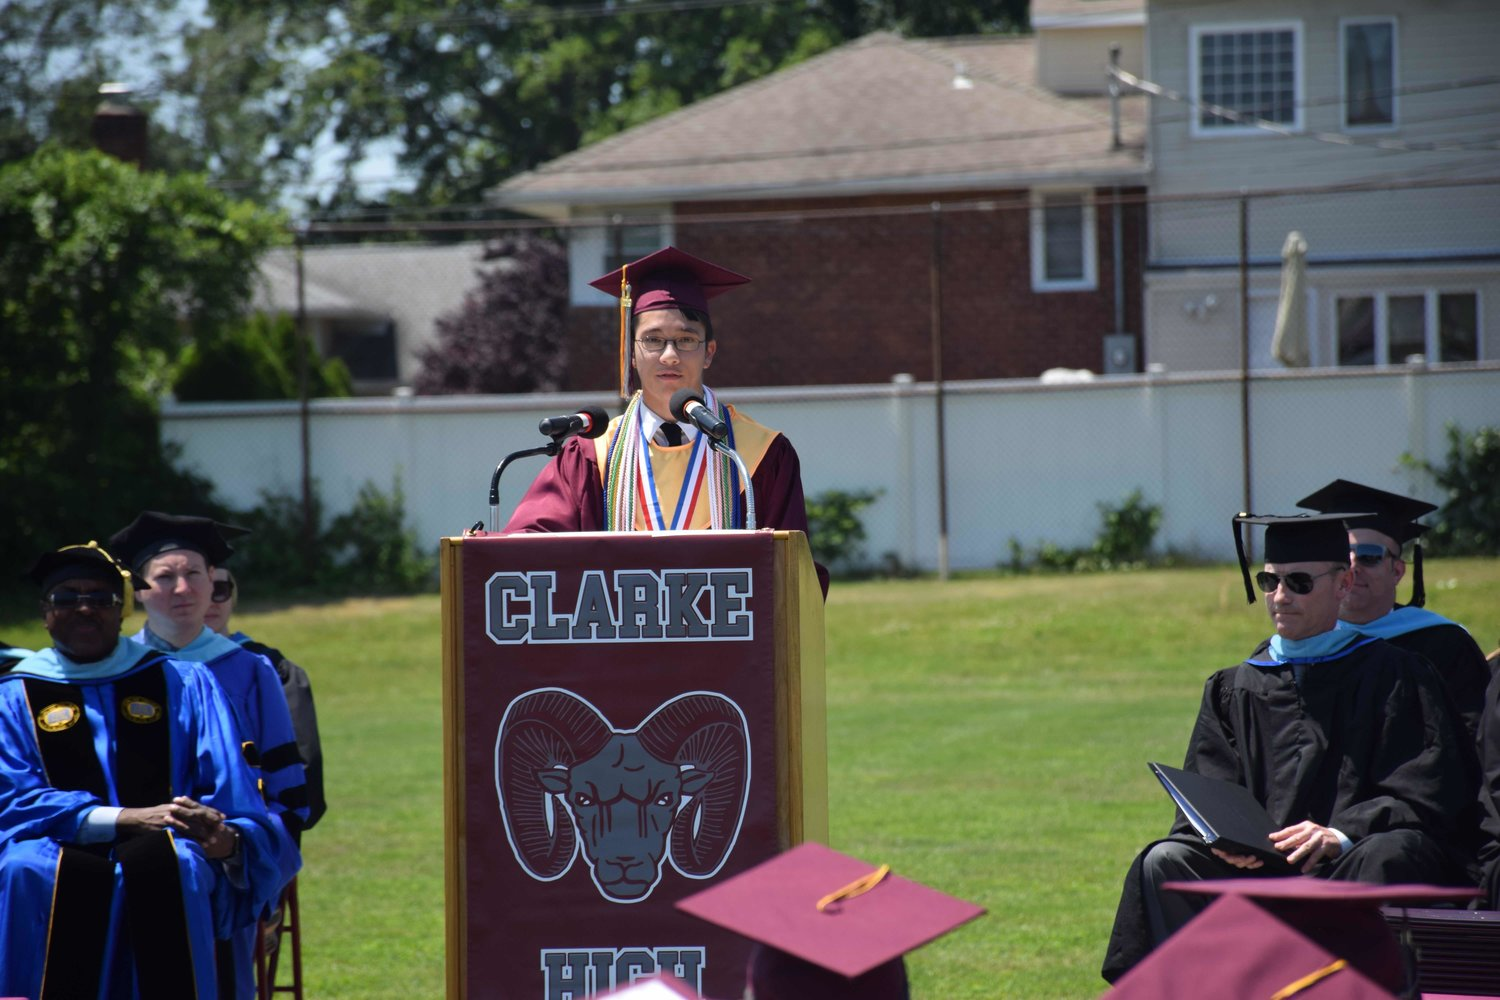 Valedictorian Jonathan Melkun addressed his peers at W.T. Clarke High School during its graduation ceremony on June 23.